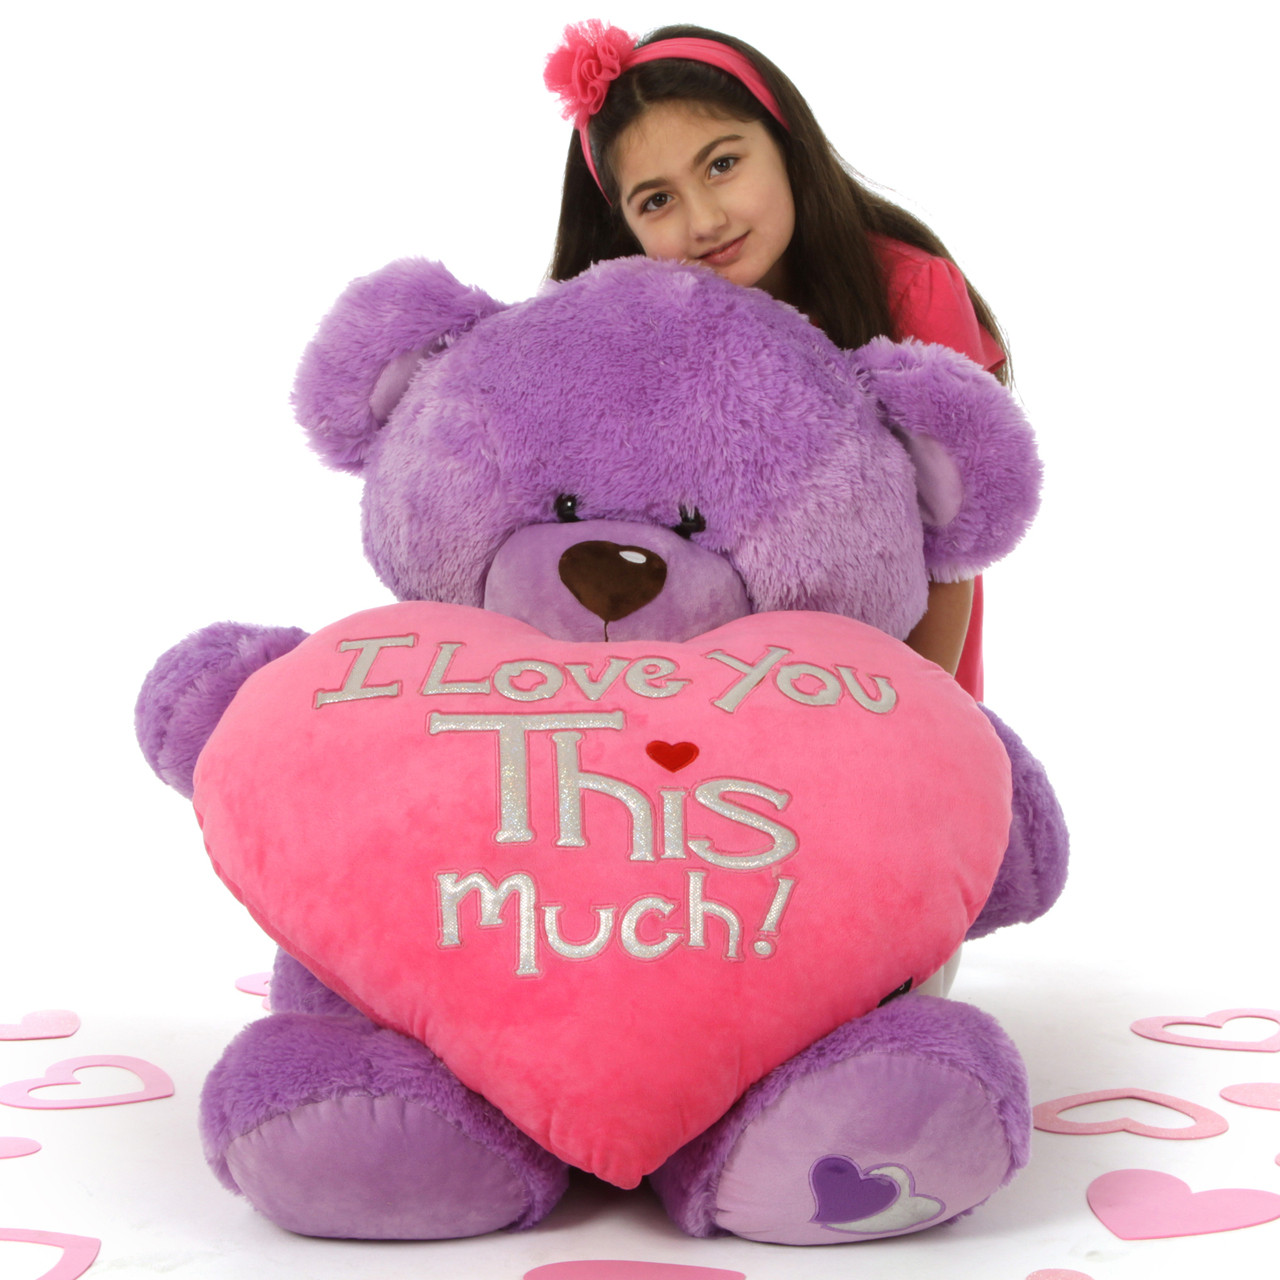 3 Ft Purple Valentineu0027s Day Teddy Bear Sewsie Big Love U2013 She Loves You THIS  Much